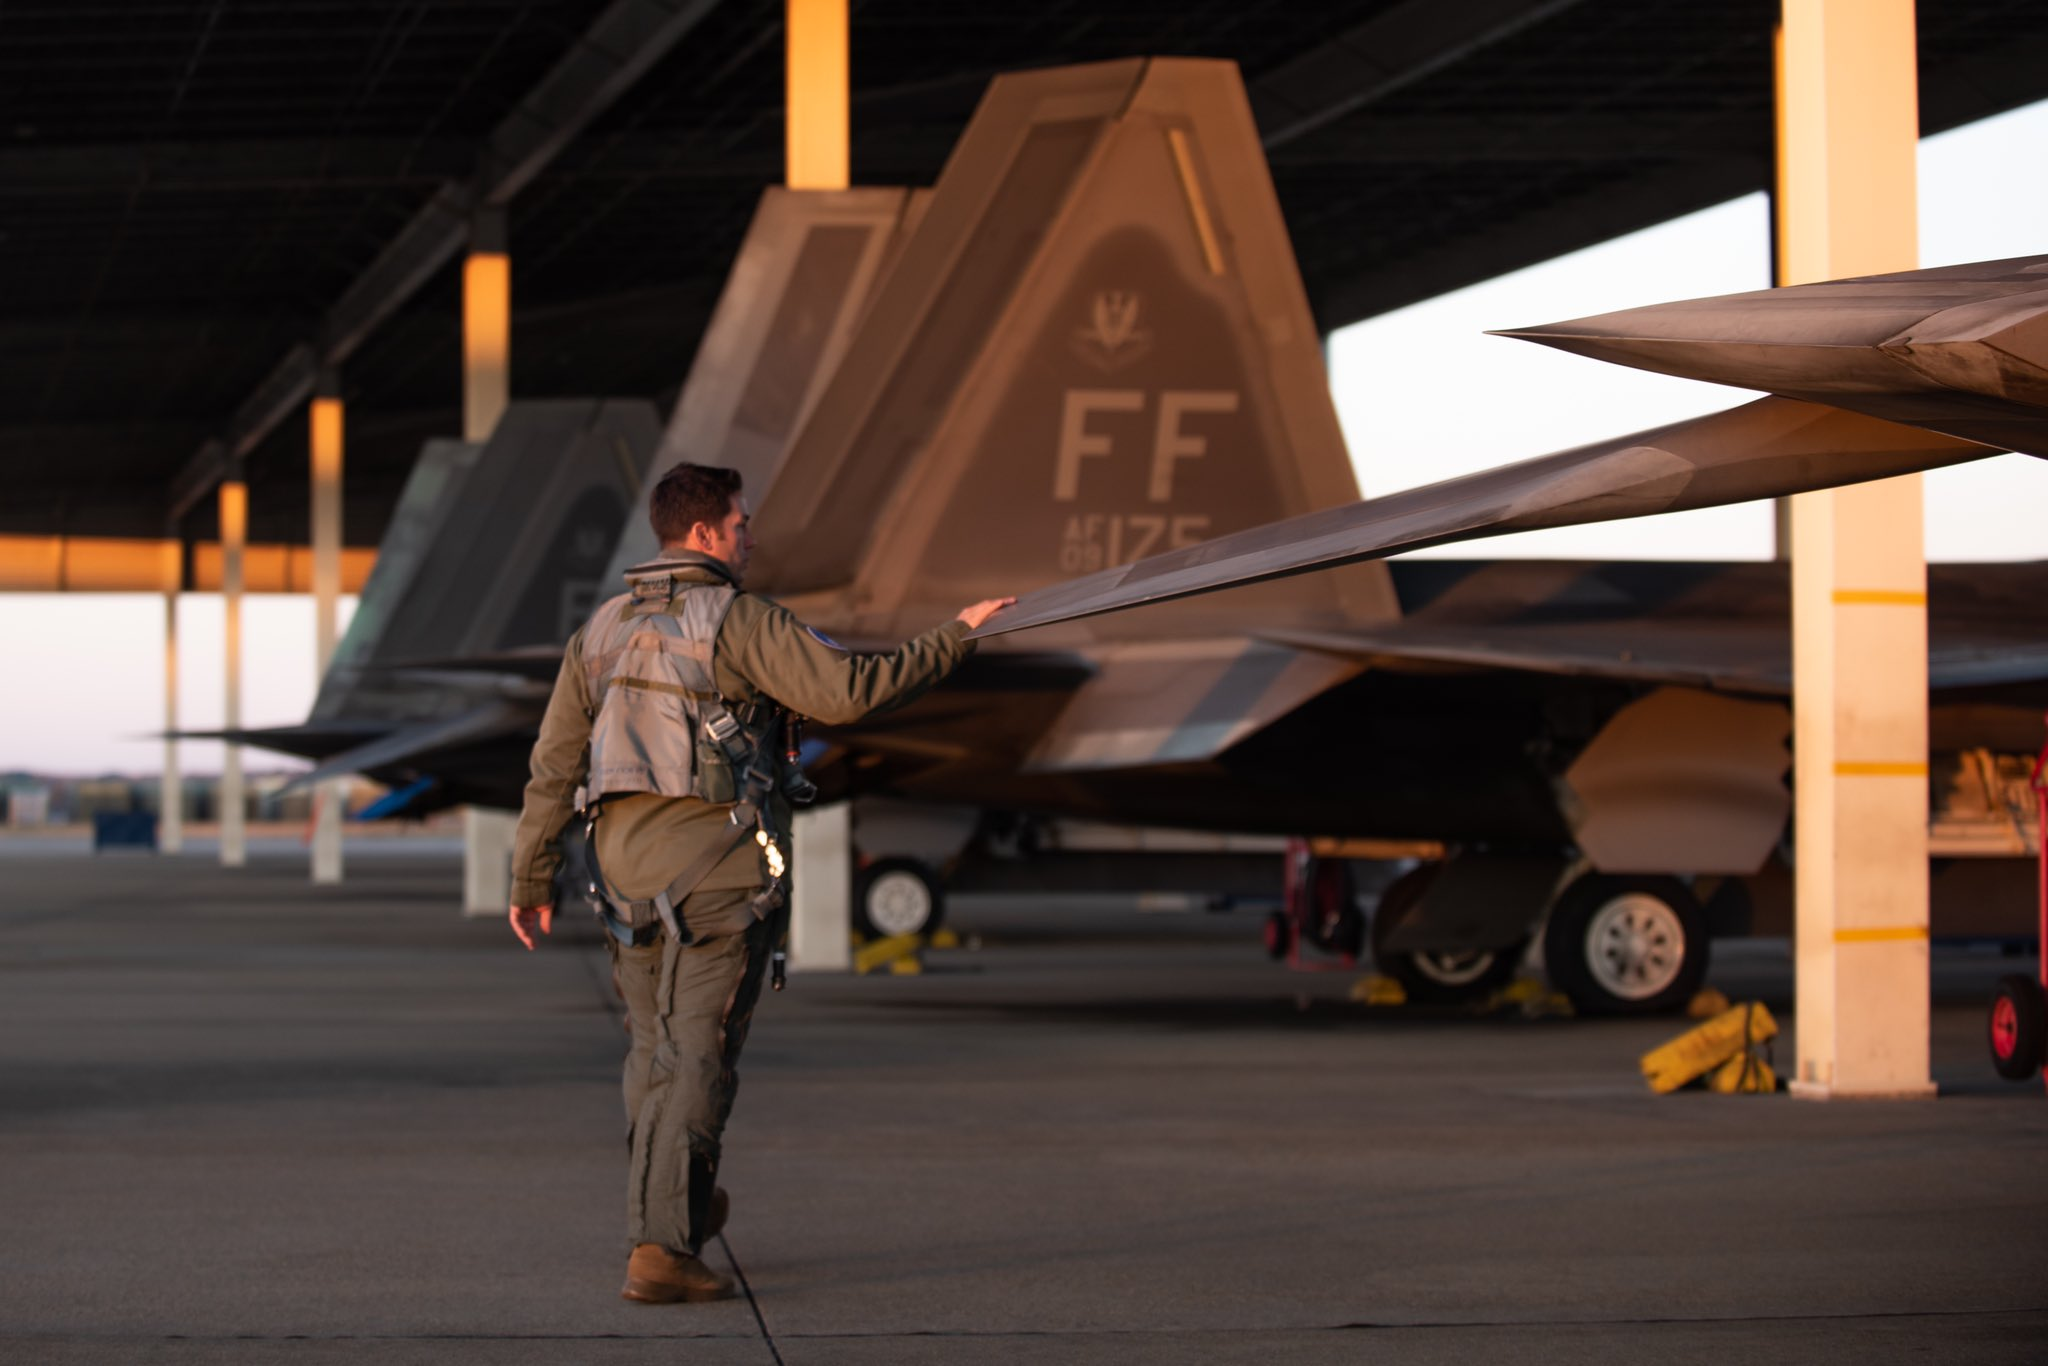 Says Dave Deptula and Douglas Birkey of Mitchell Institute call the F-22